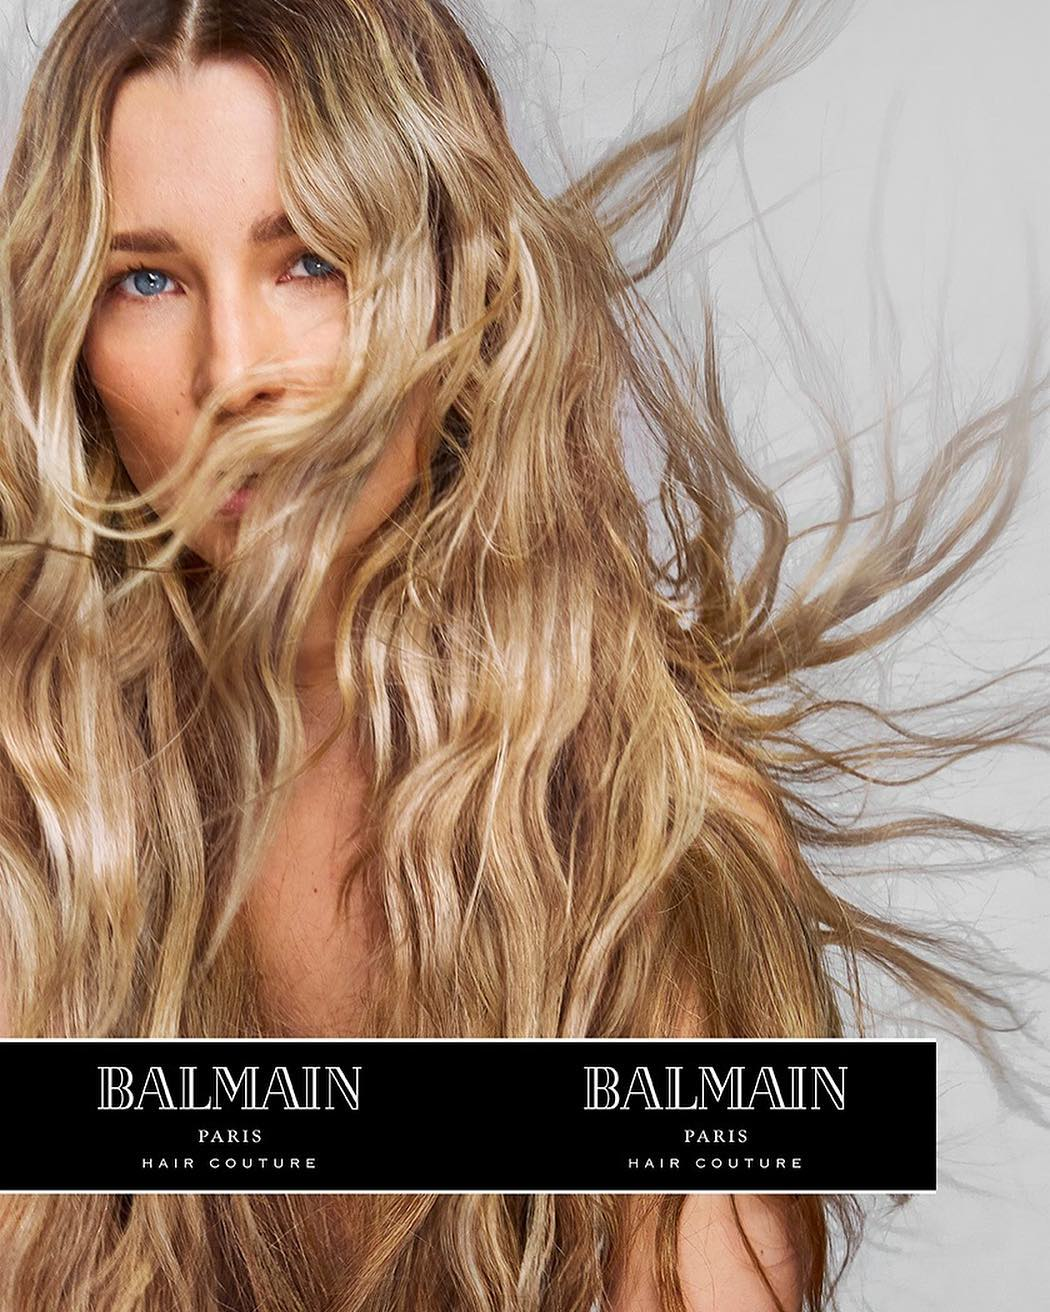 Balmain Hair Couture Spring/Summer 2018 Campaign